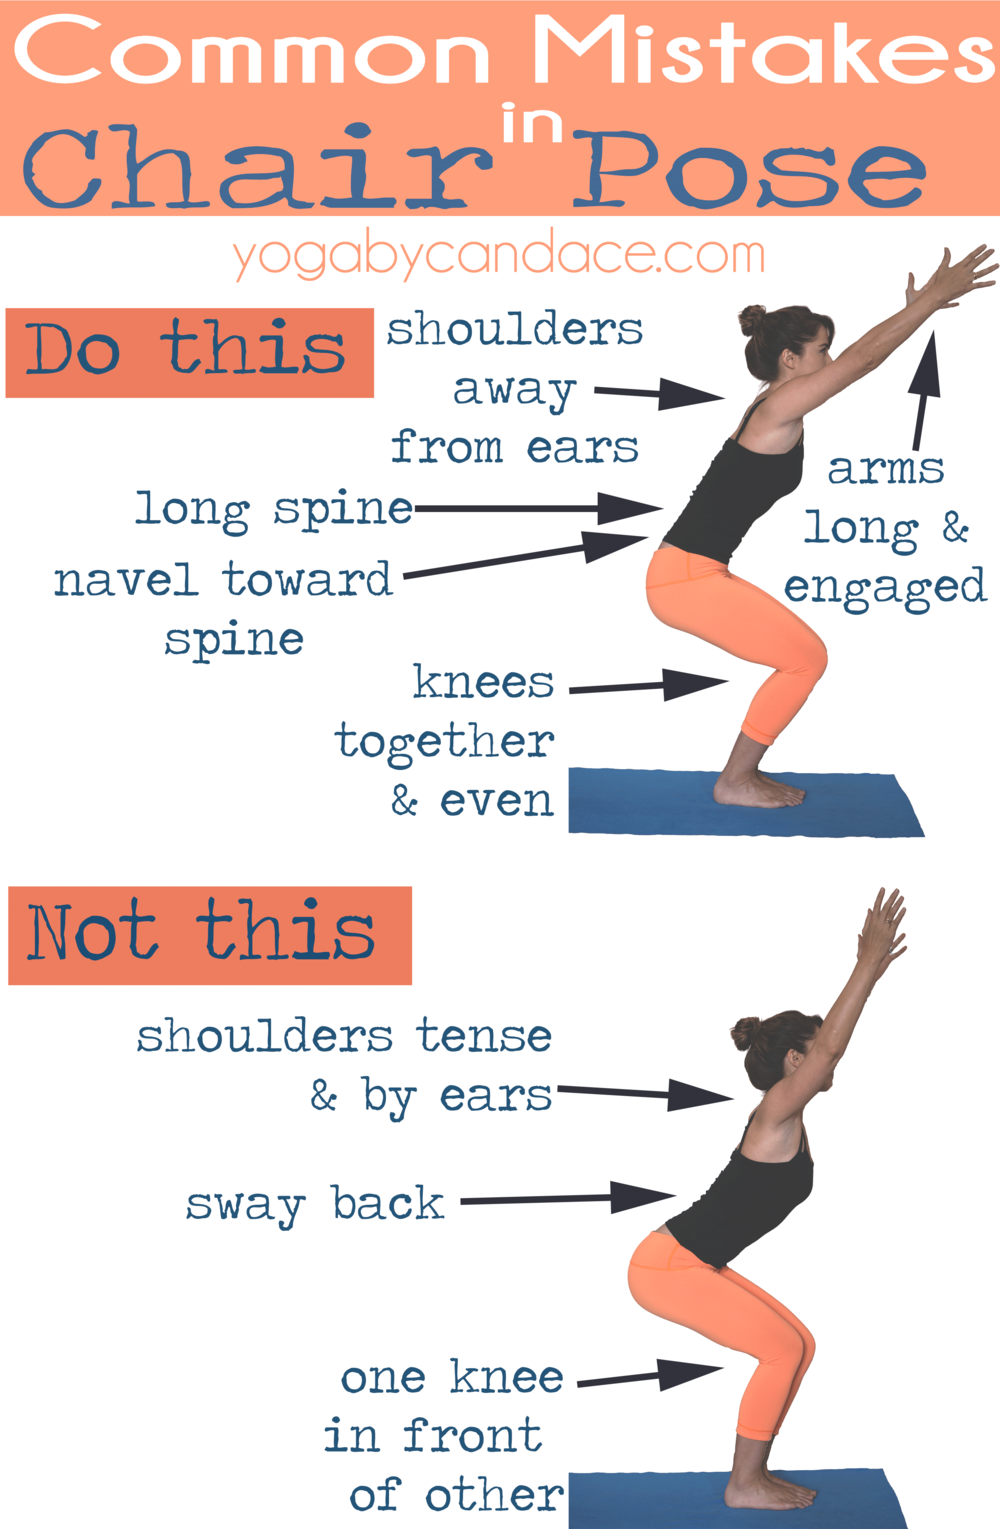 Yoga poses using a chair - Common Mistakes In Chair Pose Yogabycandace